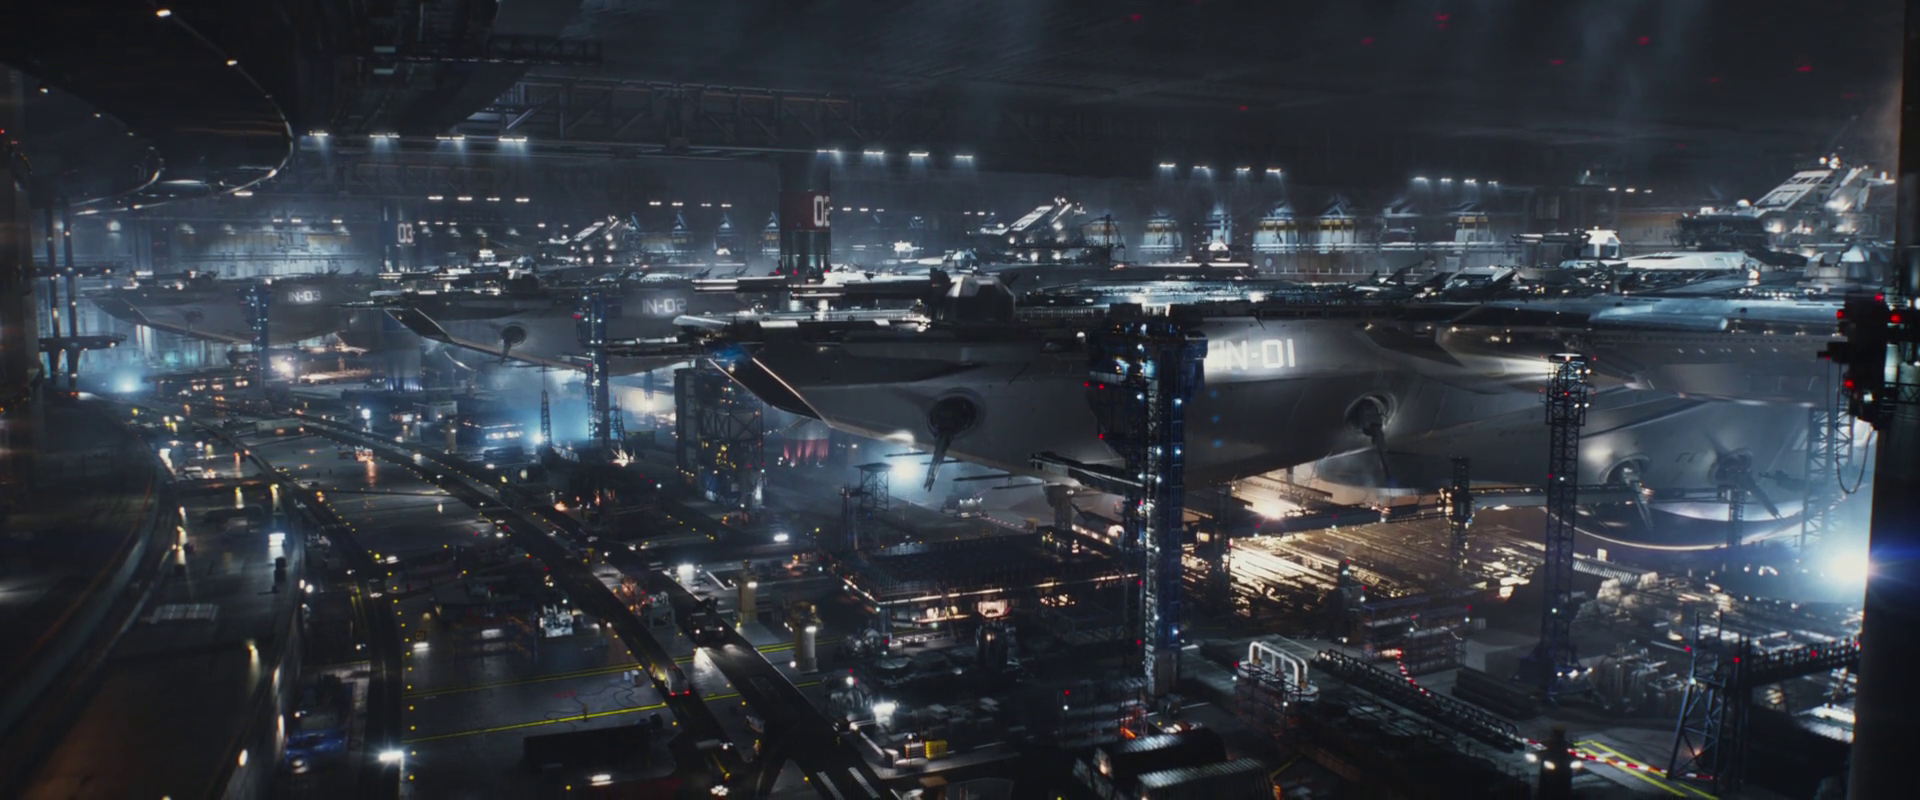 Captain America: Winter Soldier  (2014), helicarriers under the Potomac.